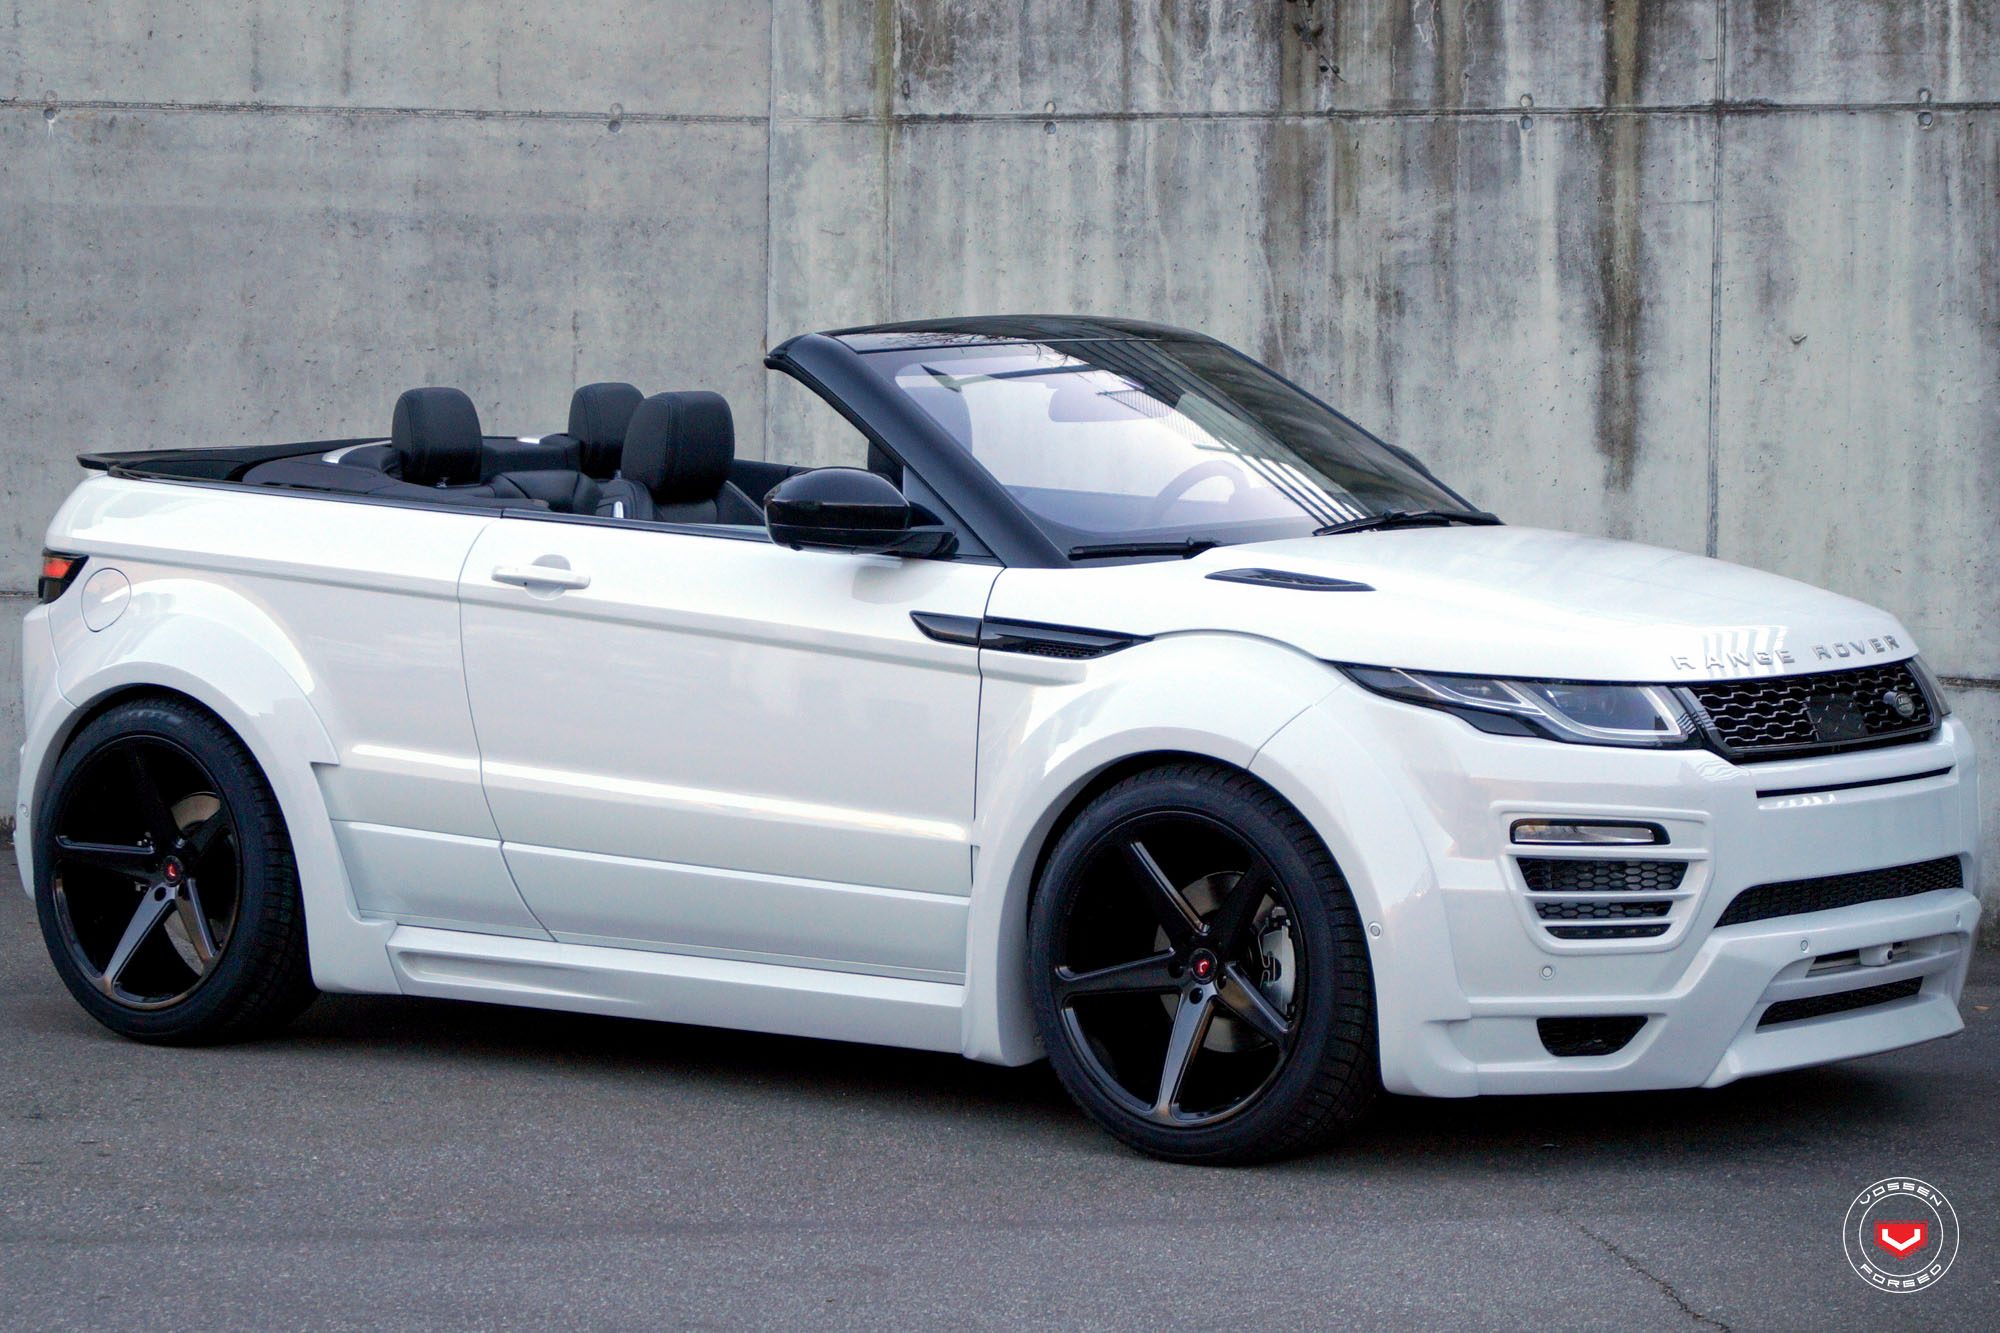 range rover evoque cabrio with widebody kit rides on. Black Bedroom Furniture Sets. Home Design Ideas